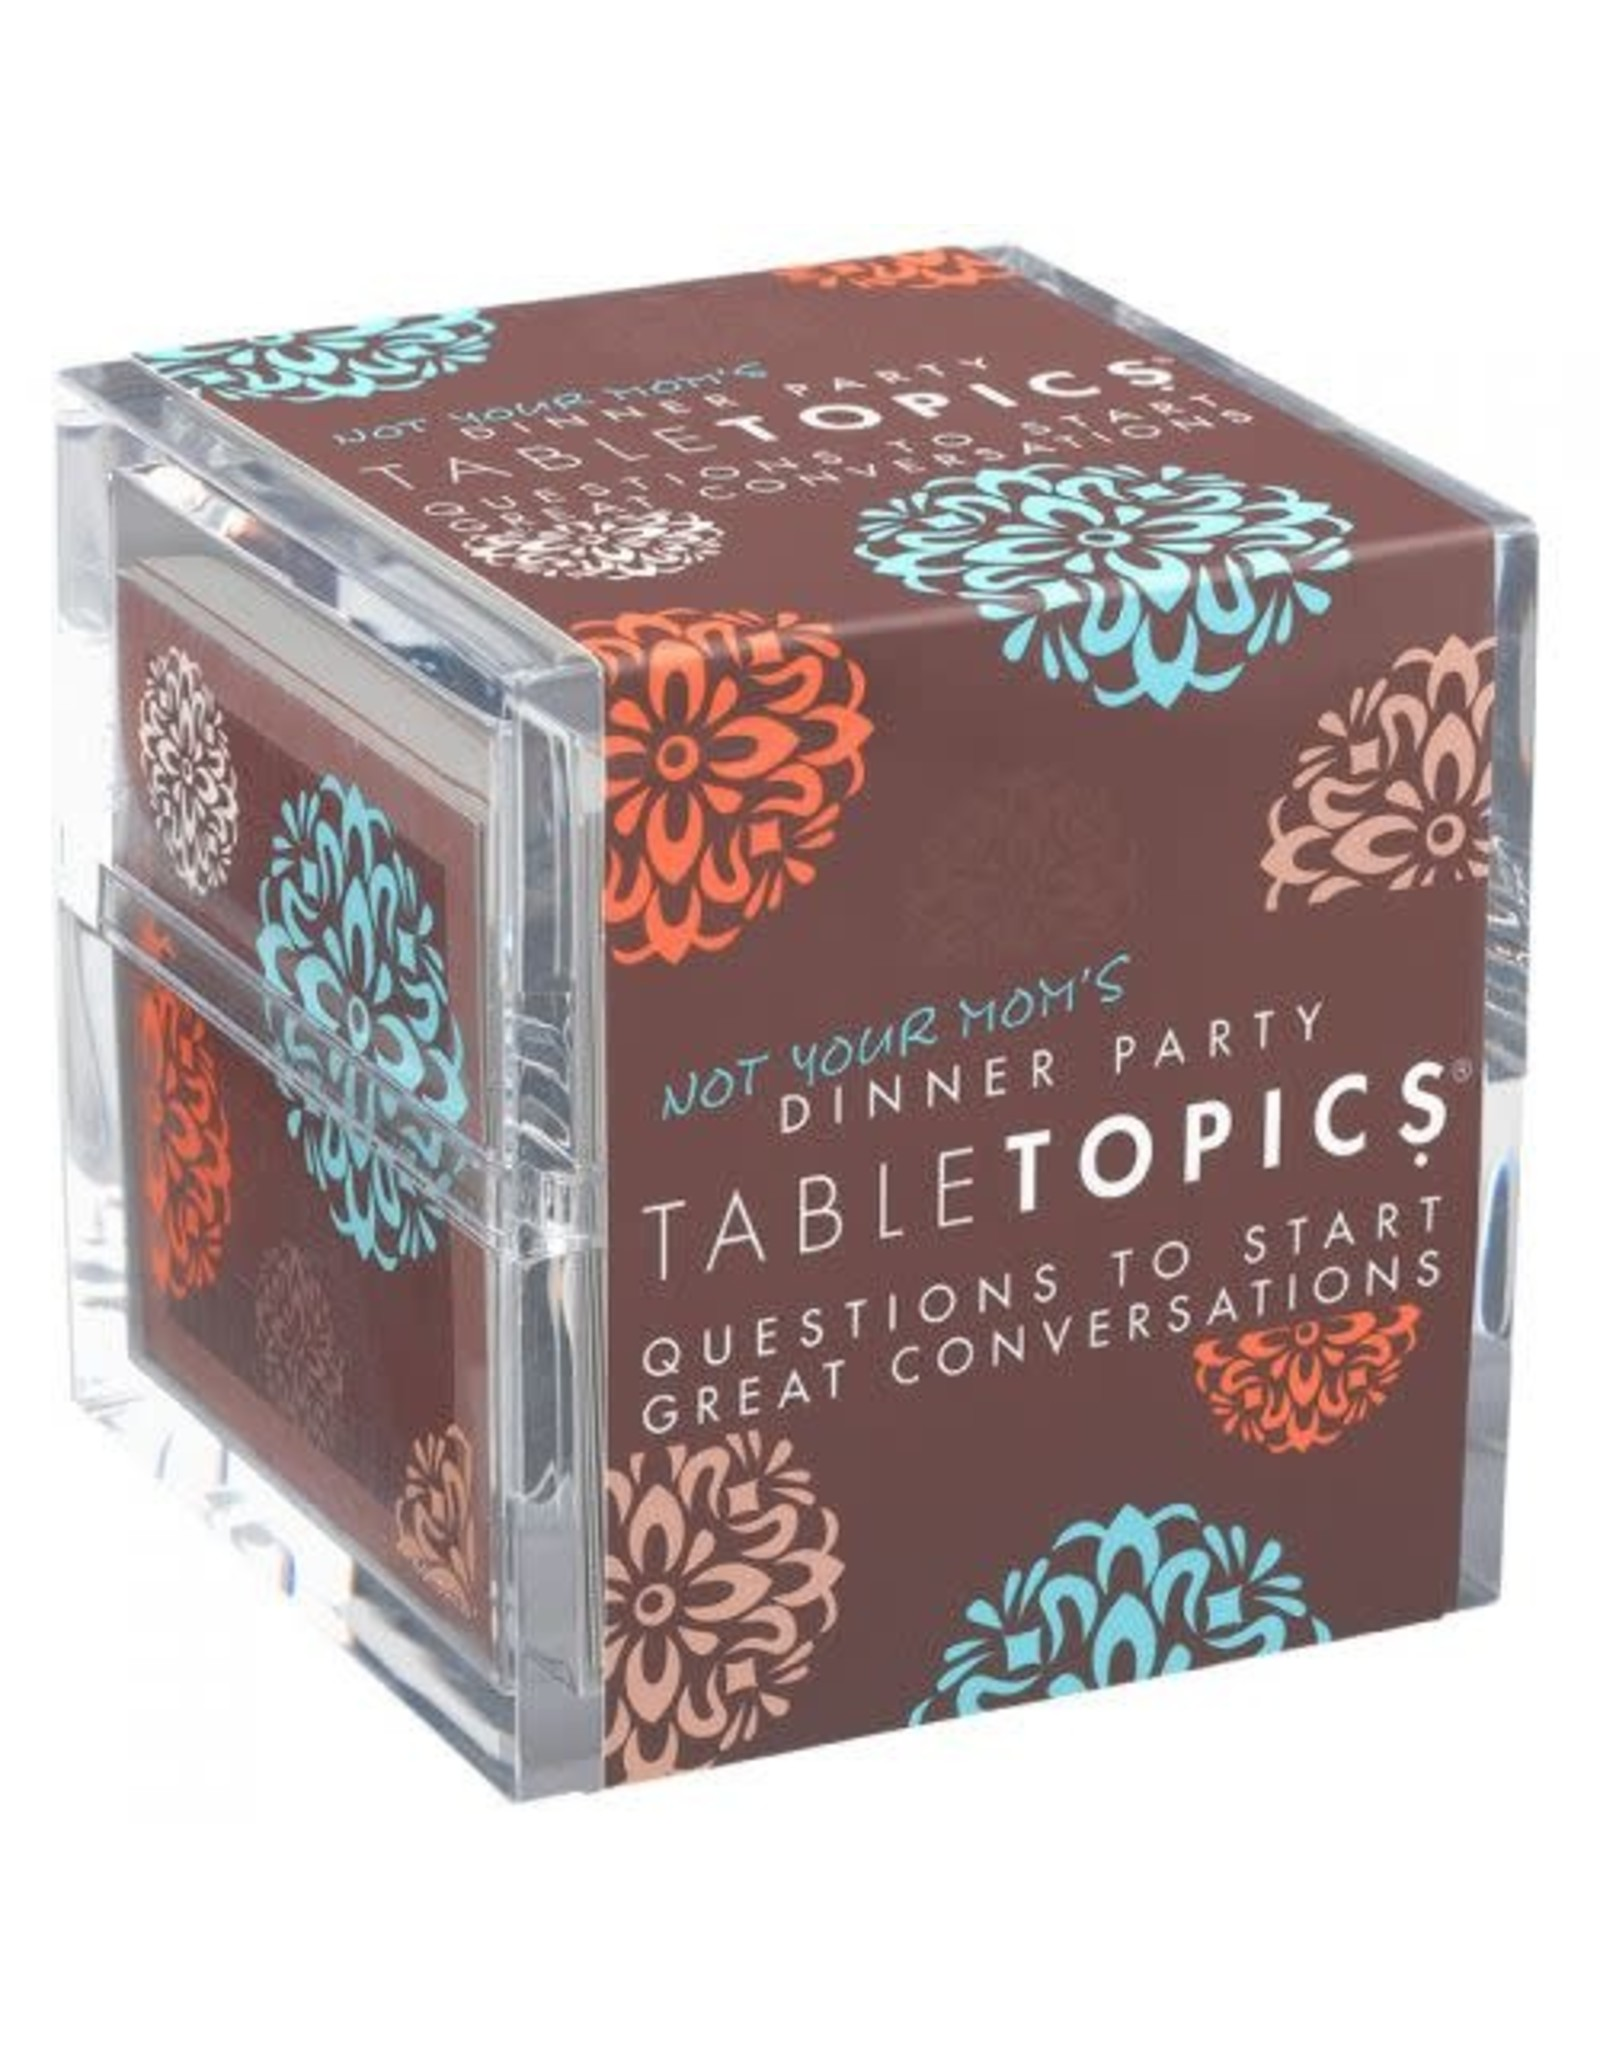 Tabletopics NOT YOUR MOM'S DINNER PARTY